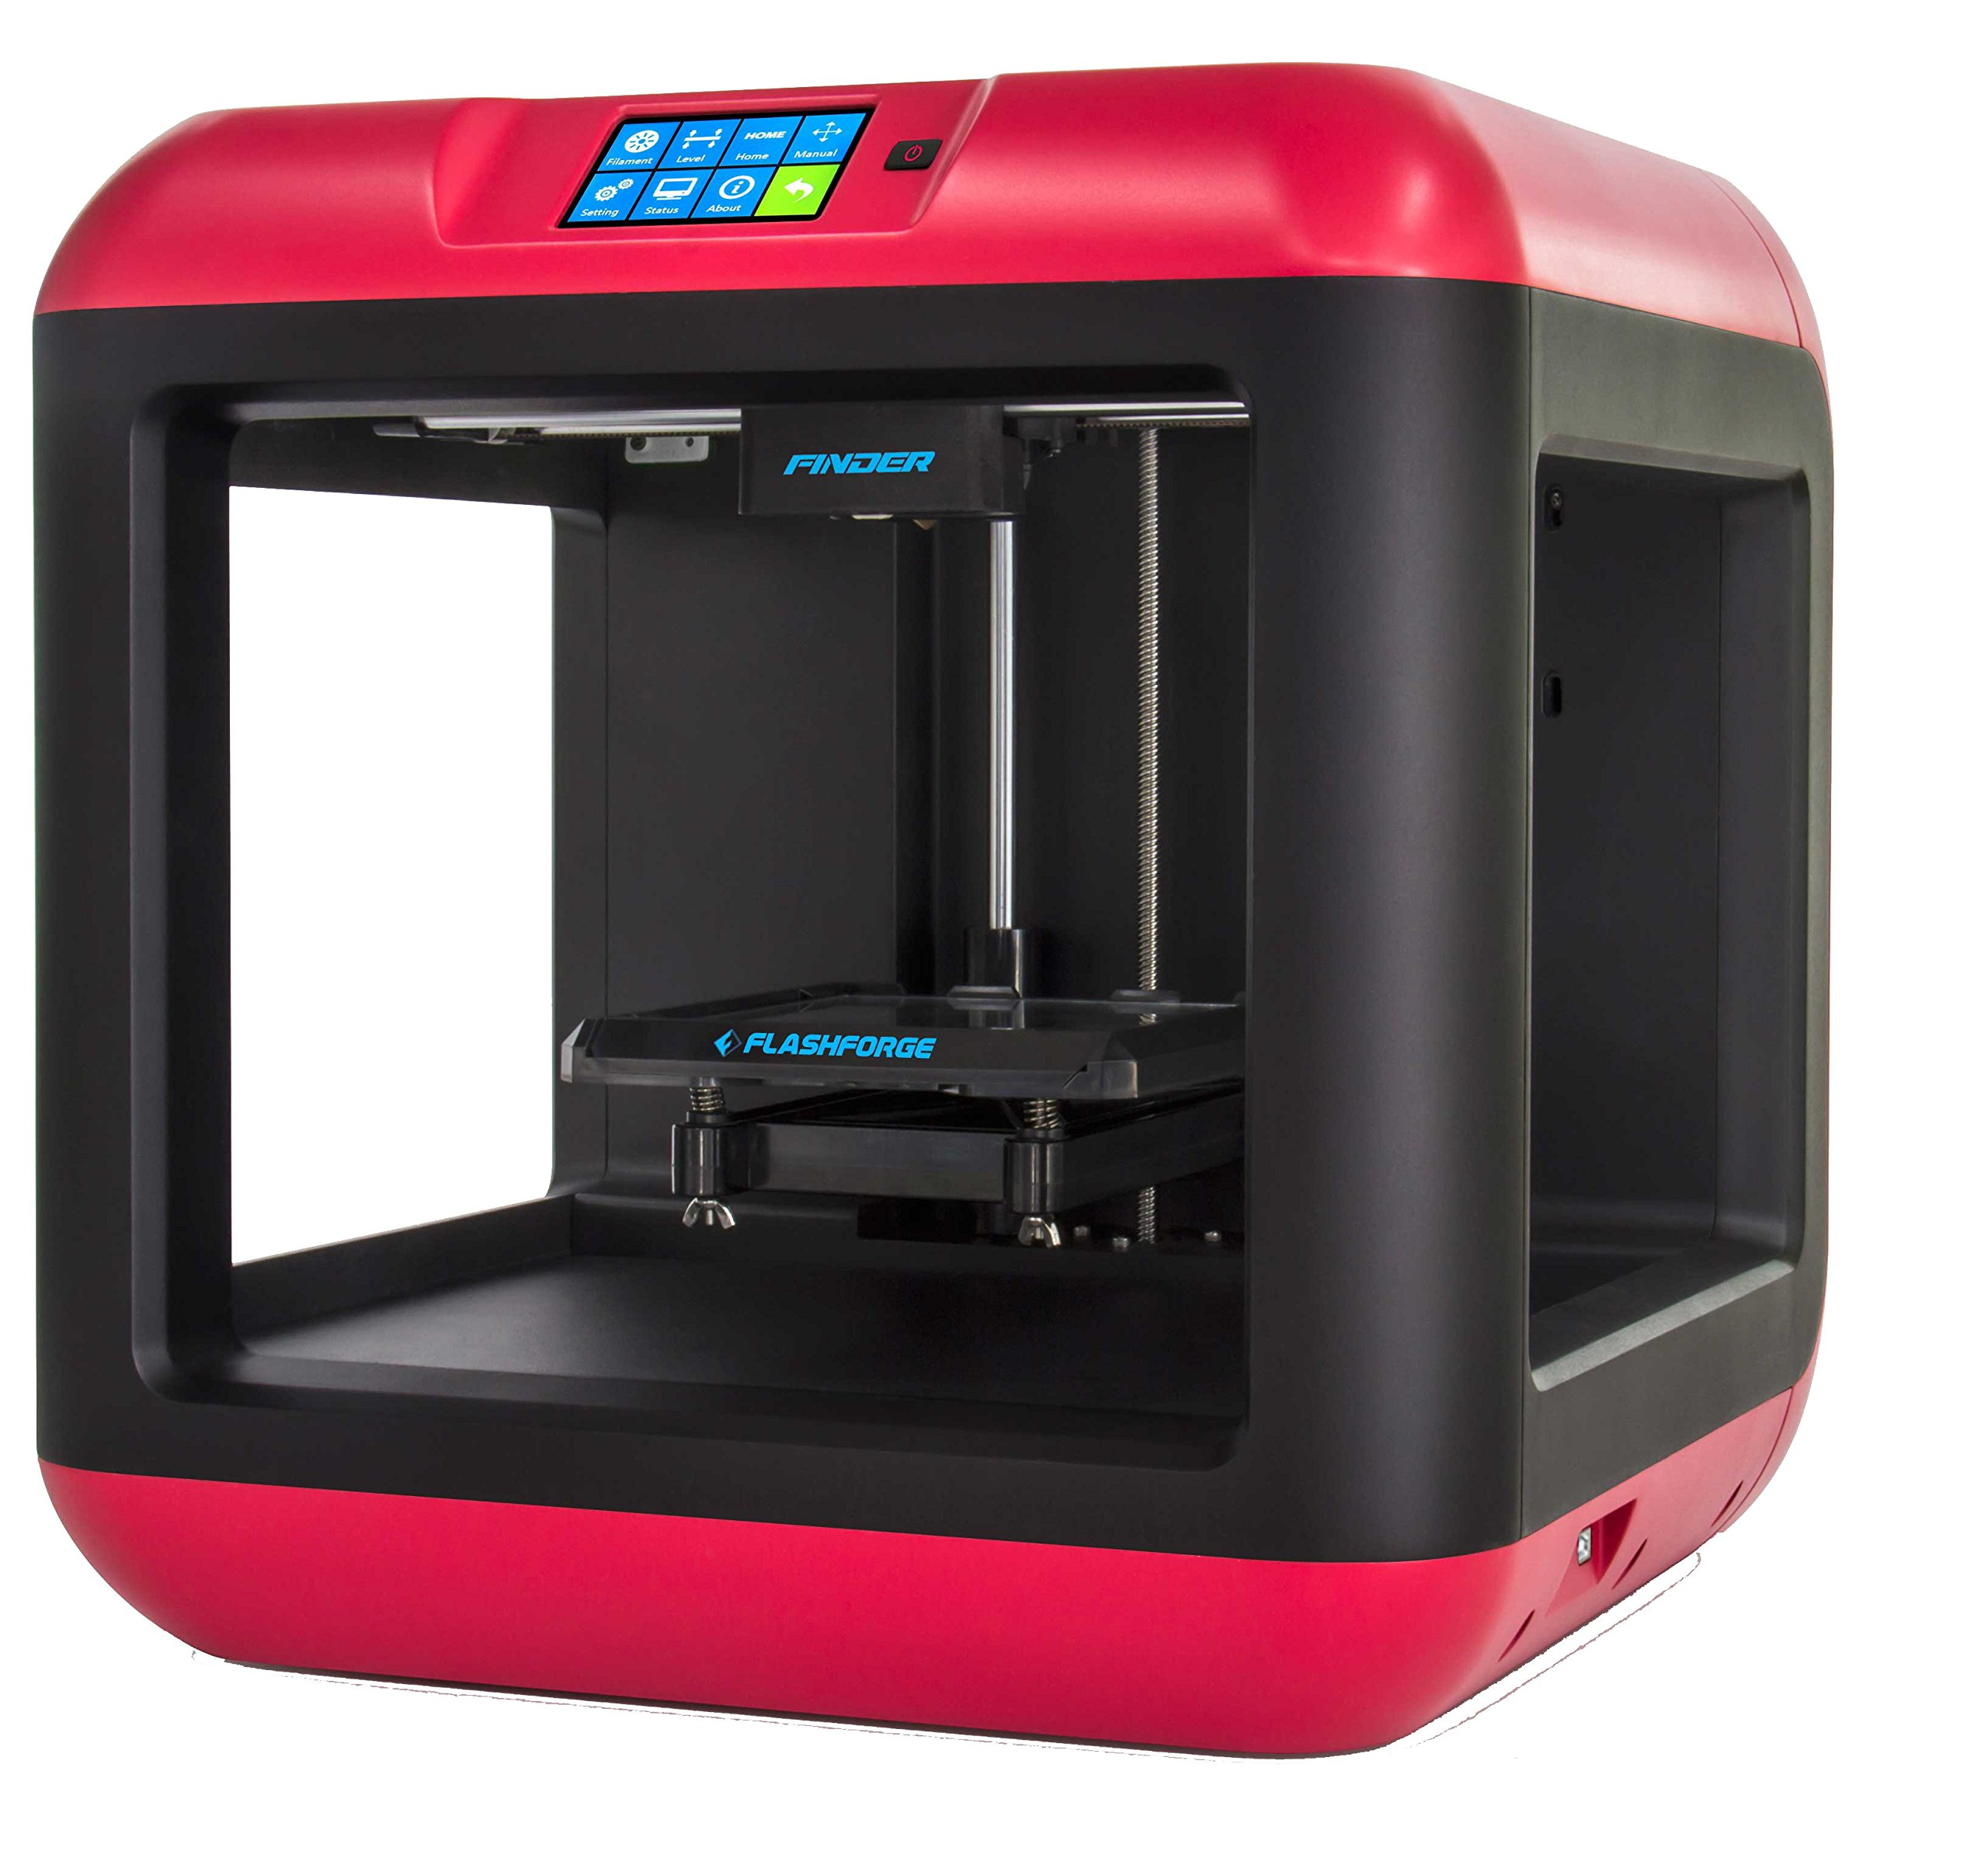 Buy Flashforge 3D Printer Now!